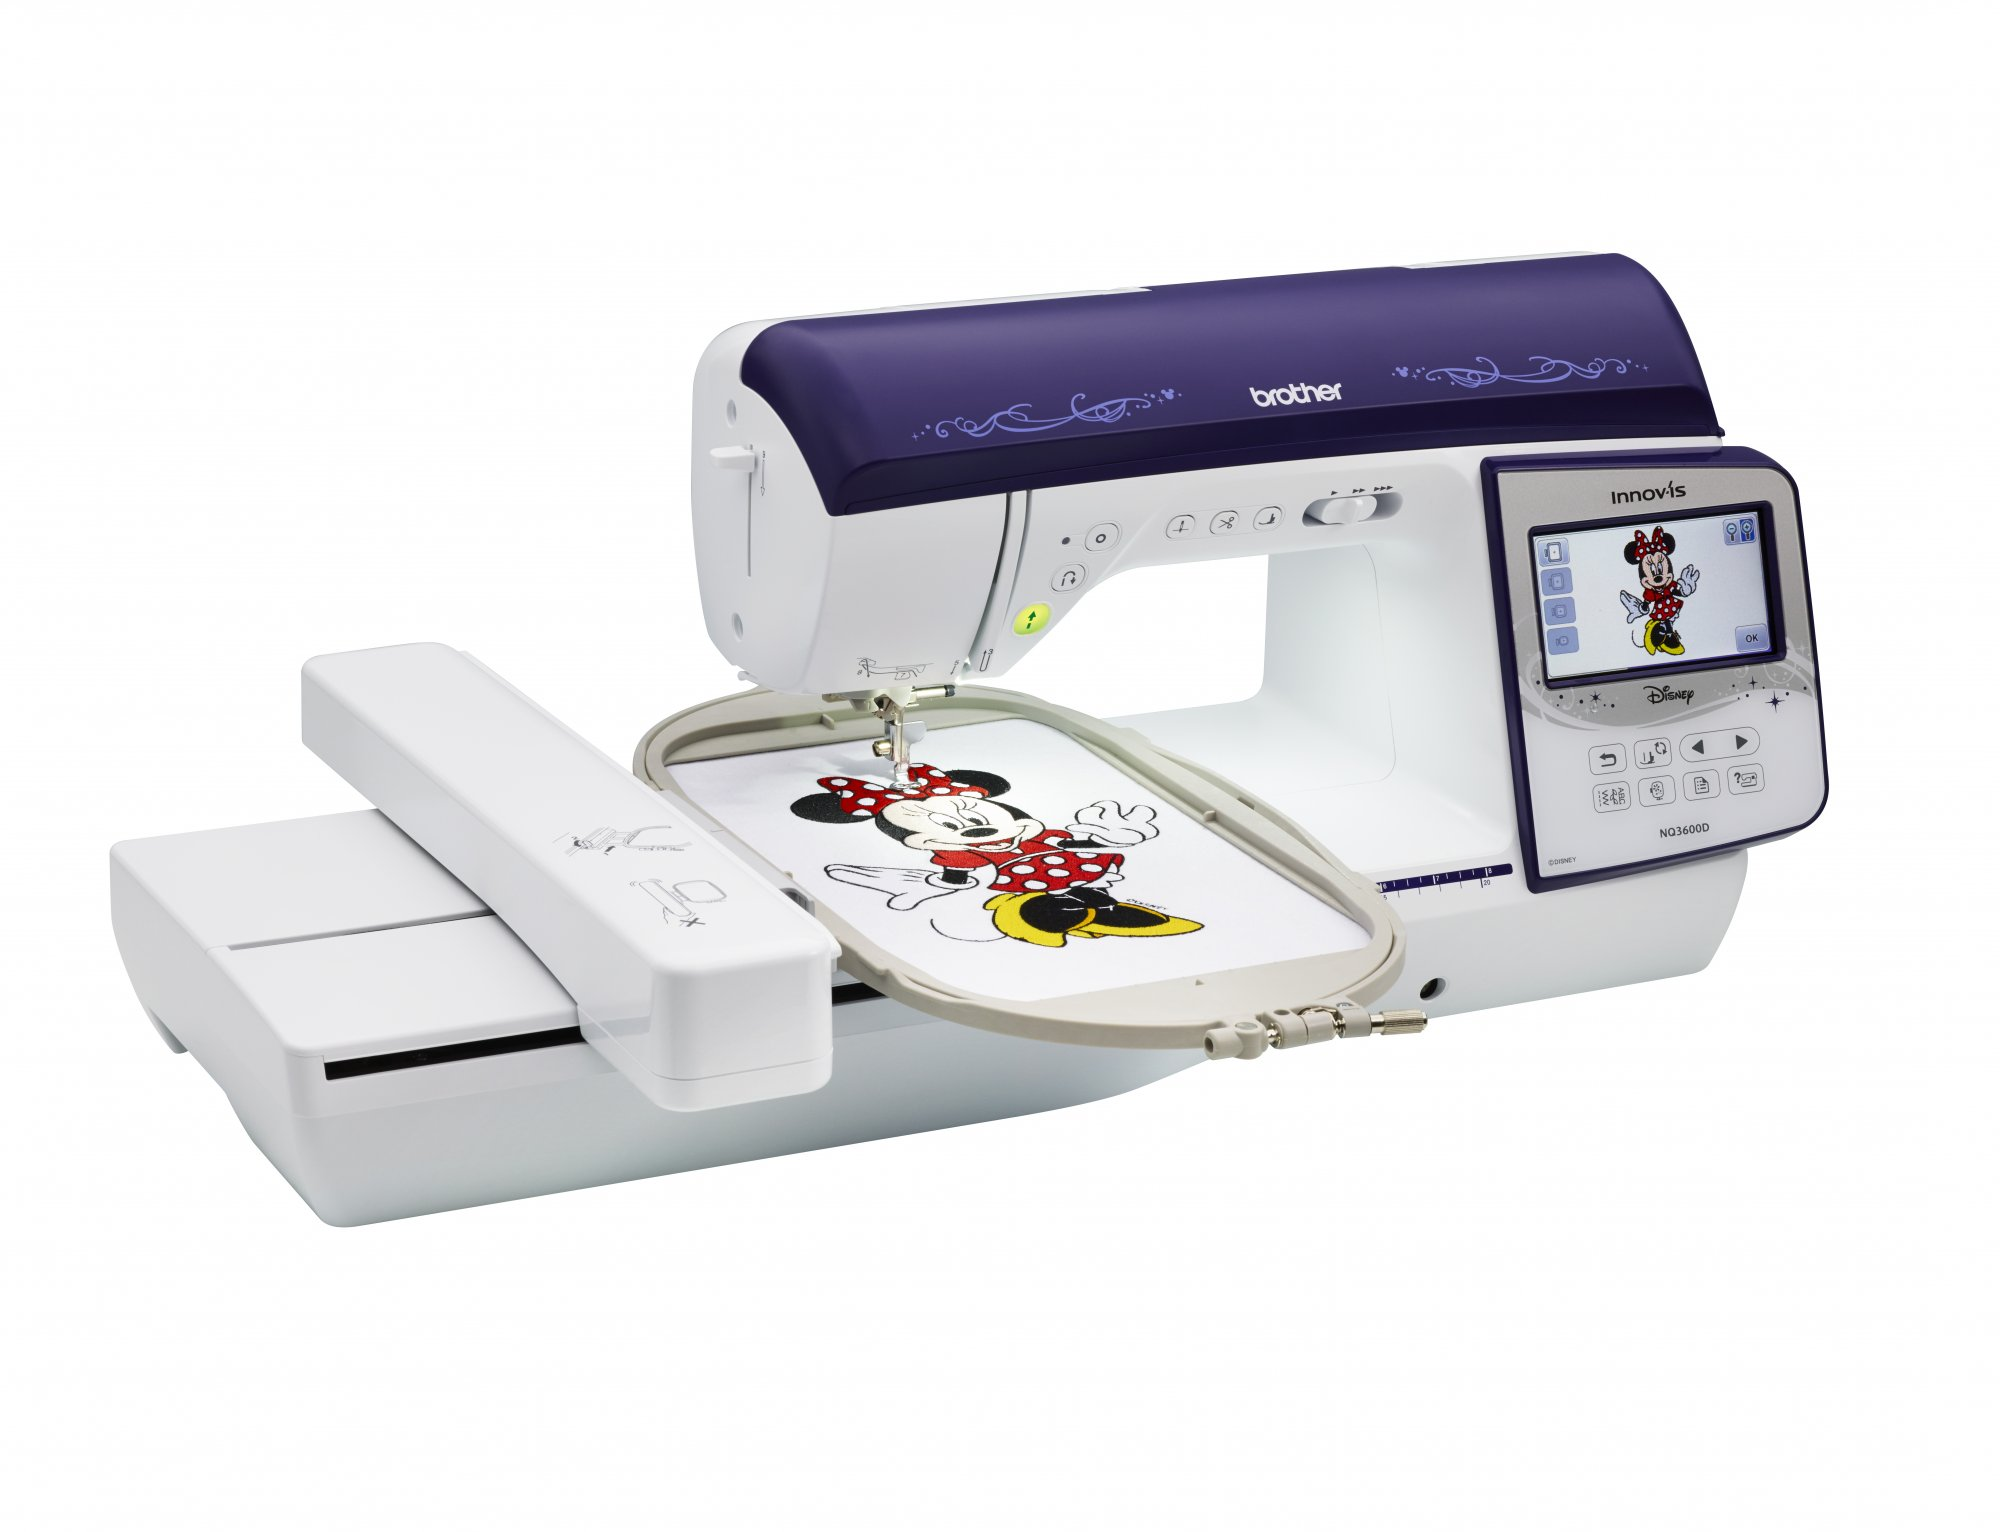 Brother NQ 3600D Sewing and Embroidery